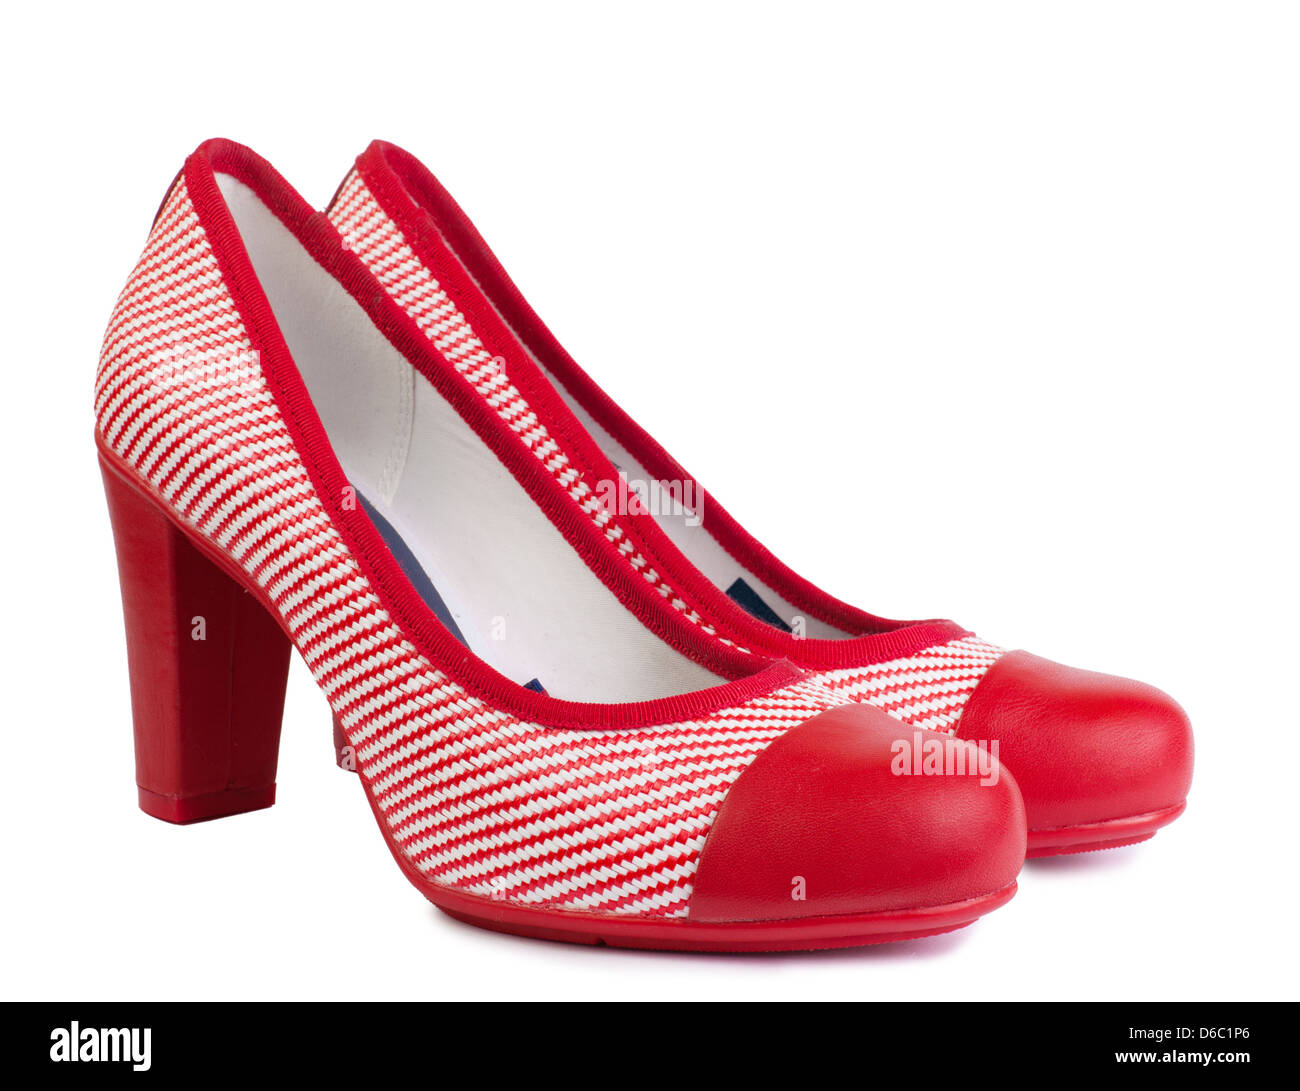 de1323318f2a fashionable women s high heel shoes. pair of striped red shoes. Isolated  over white background